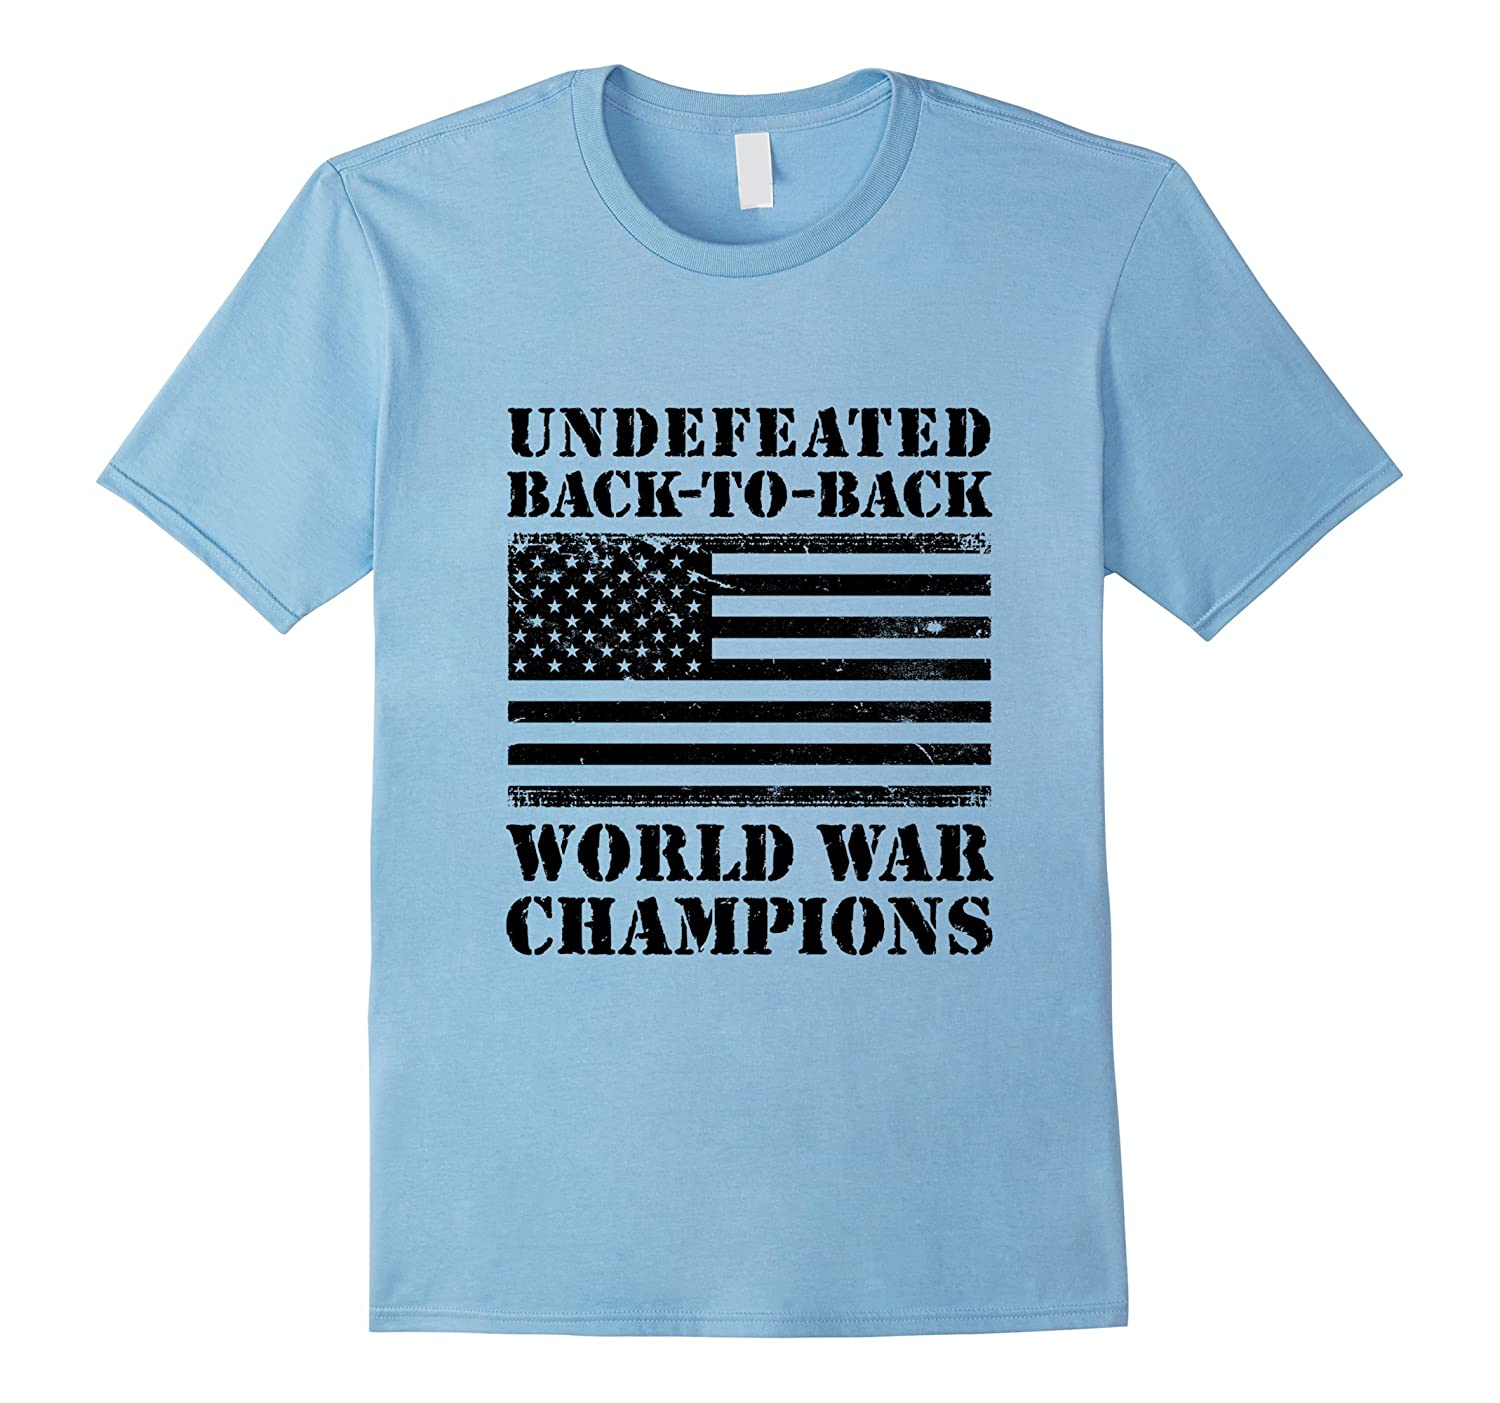 Undefeated Back-To-Back World War Champions T-shirt